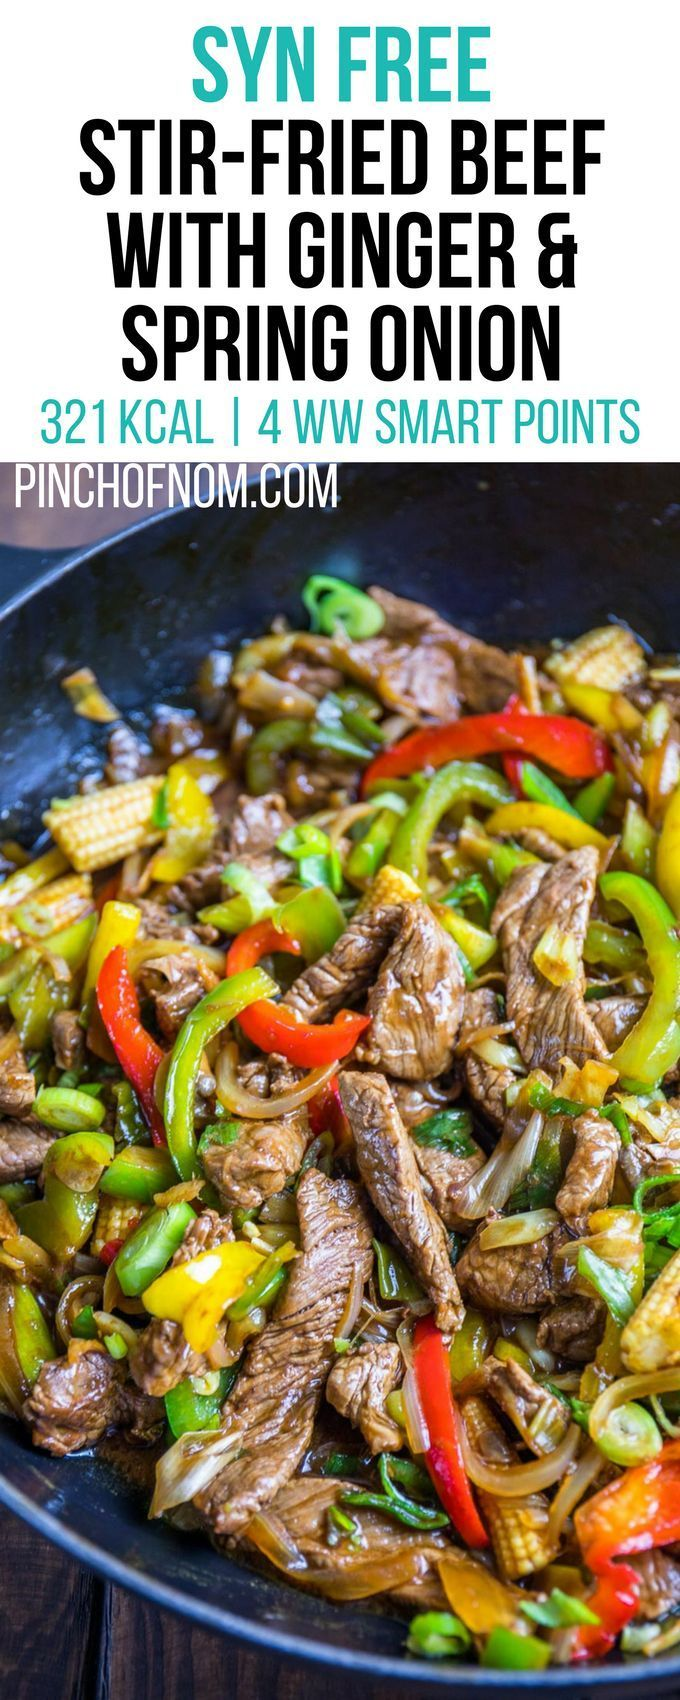 Stir-fried Beef with Ginger and Spring Onion - Pinch Of Nom